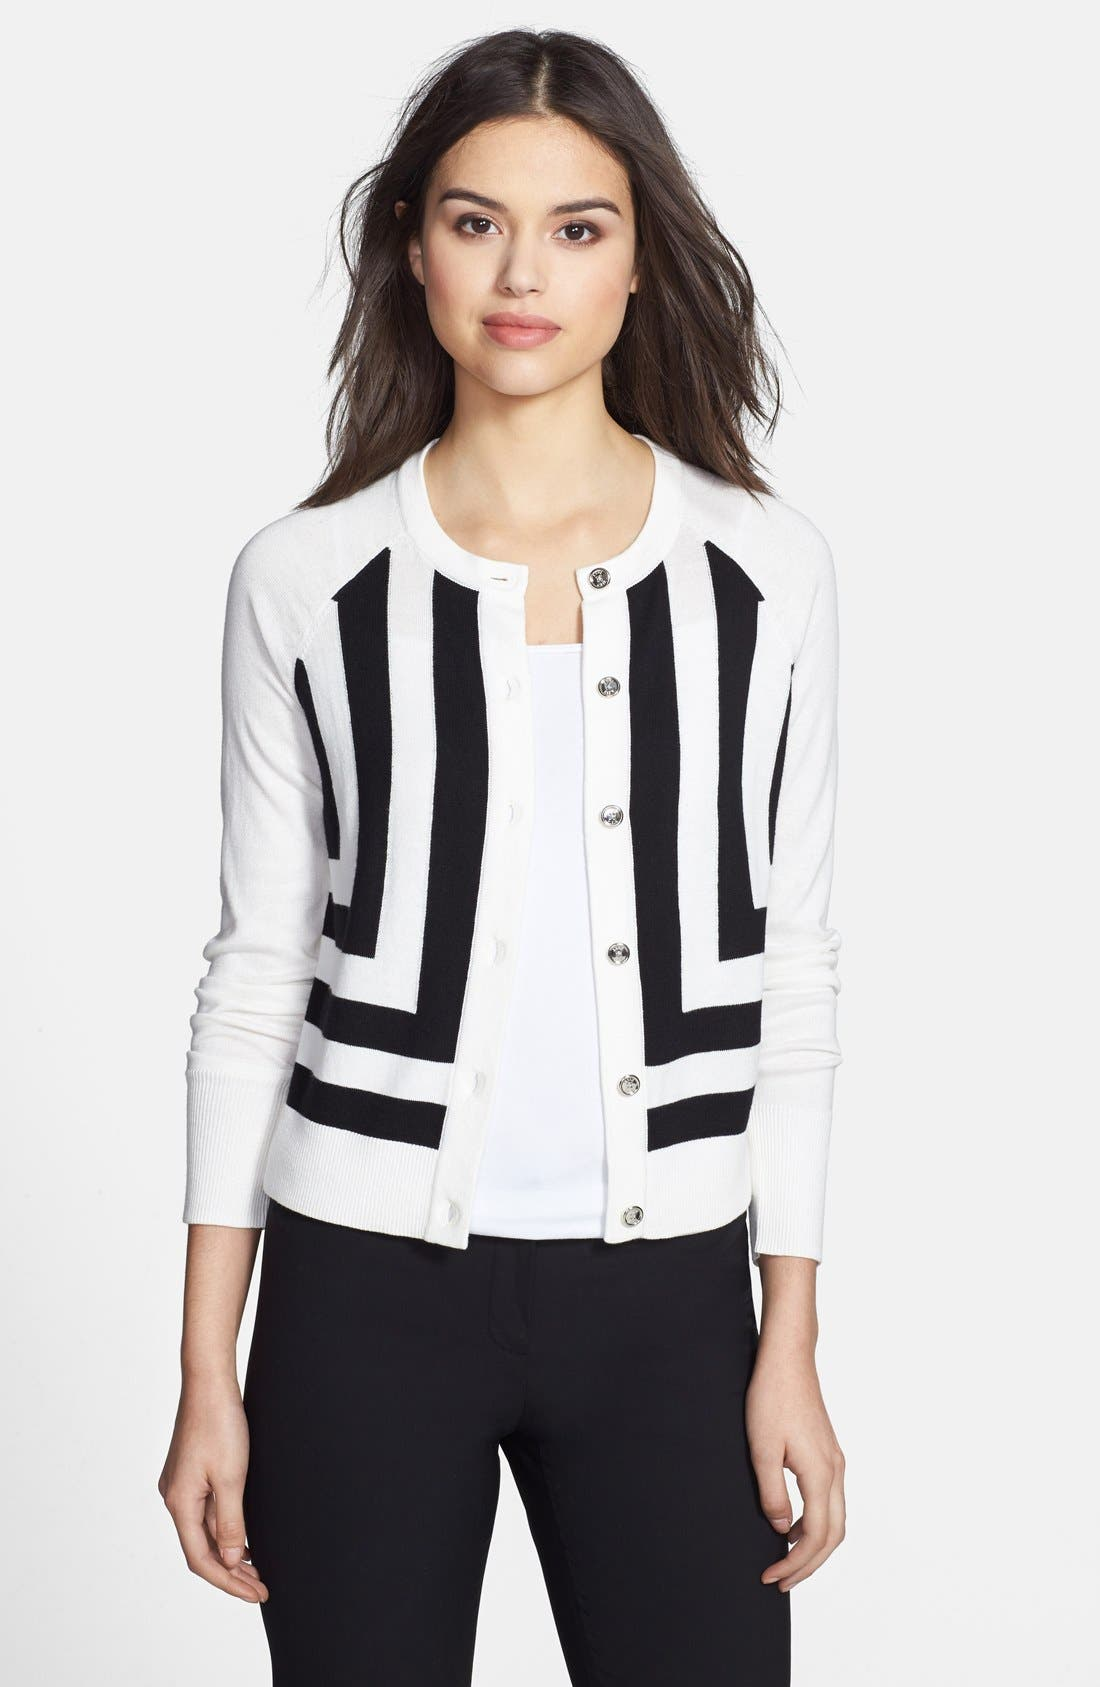 Alternate Image 1 Selected - Anne Klein 'Chevron' Pattern Cardigan (Regular & Petite)